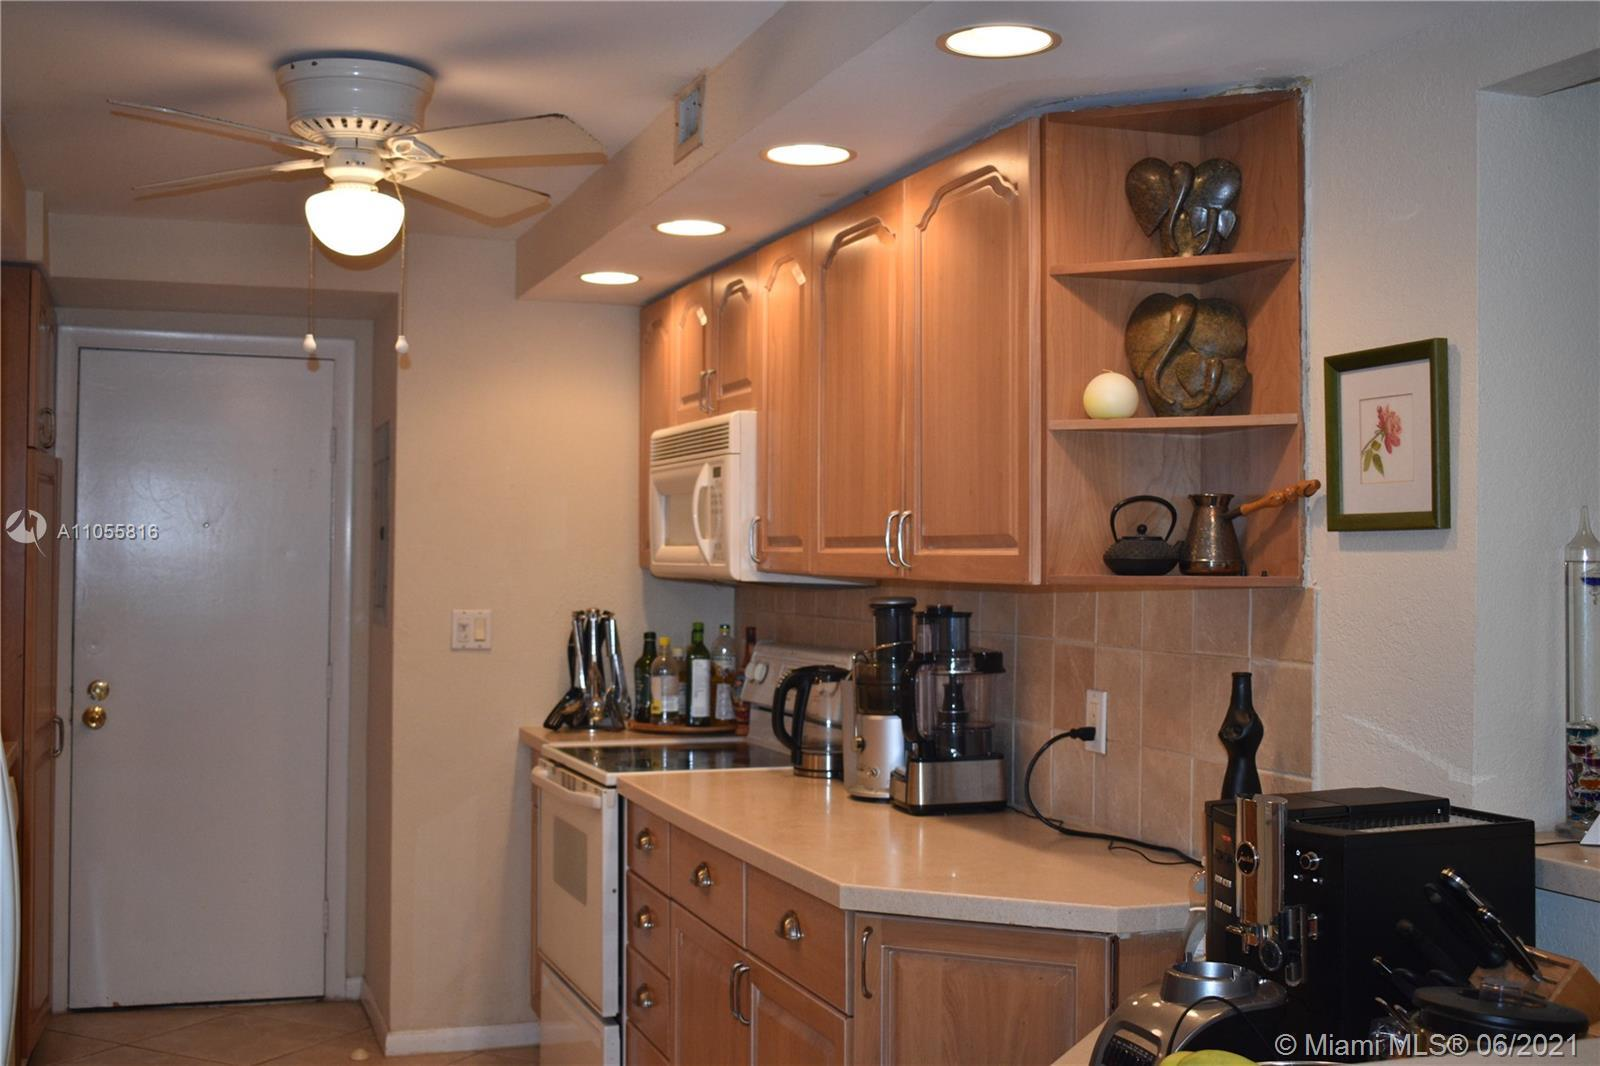 This is a two bedroom, two bath remodeled unit, light neutral wood kitchen cabinets with ceramic til